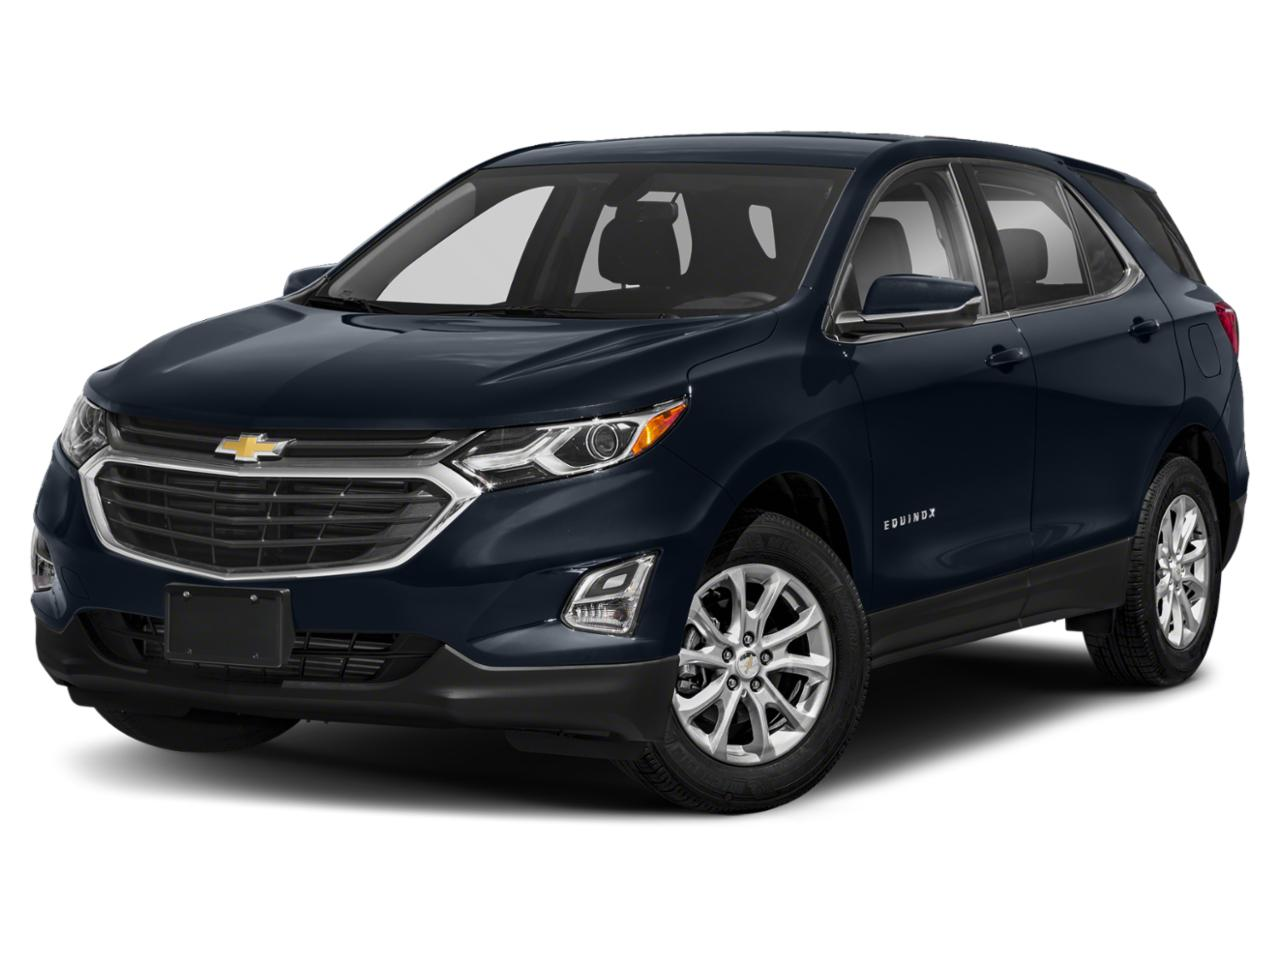 Used 2018 Chevrolet Equinox LT with VIN 3GNAXSEV5JL382196 for sale in Brooklyn Center, Minnesota